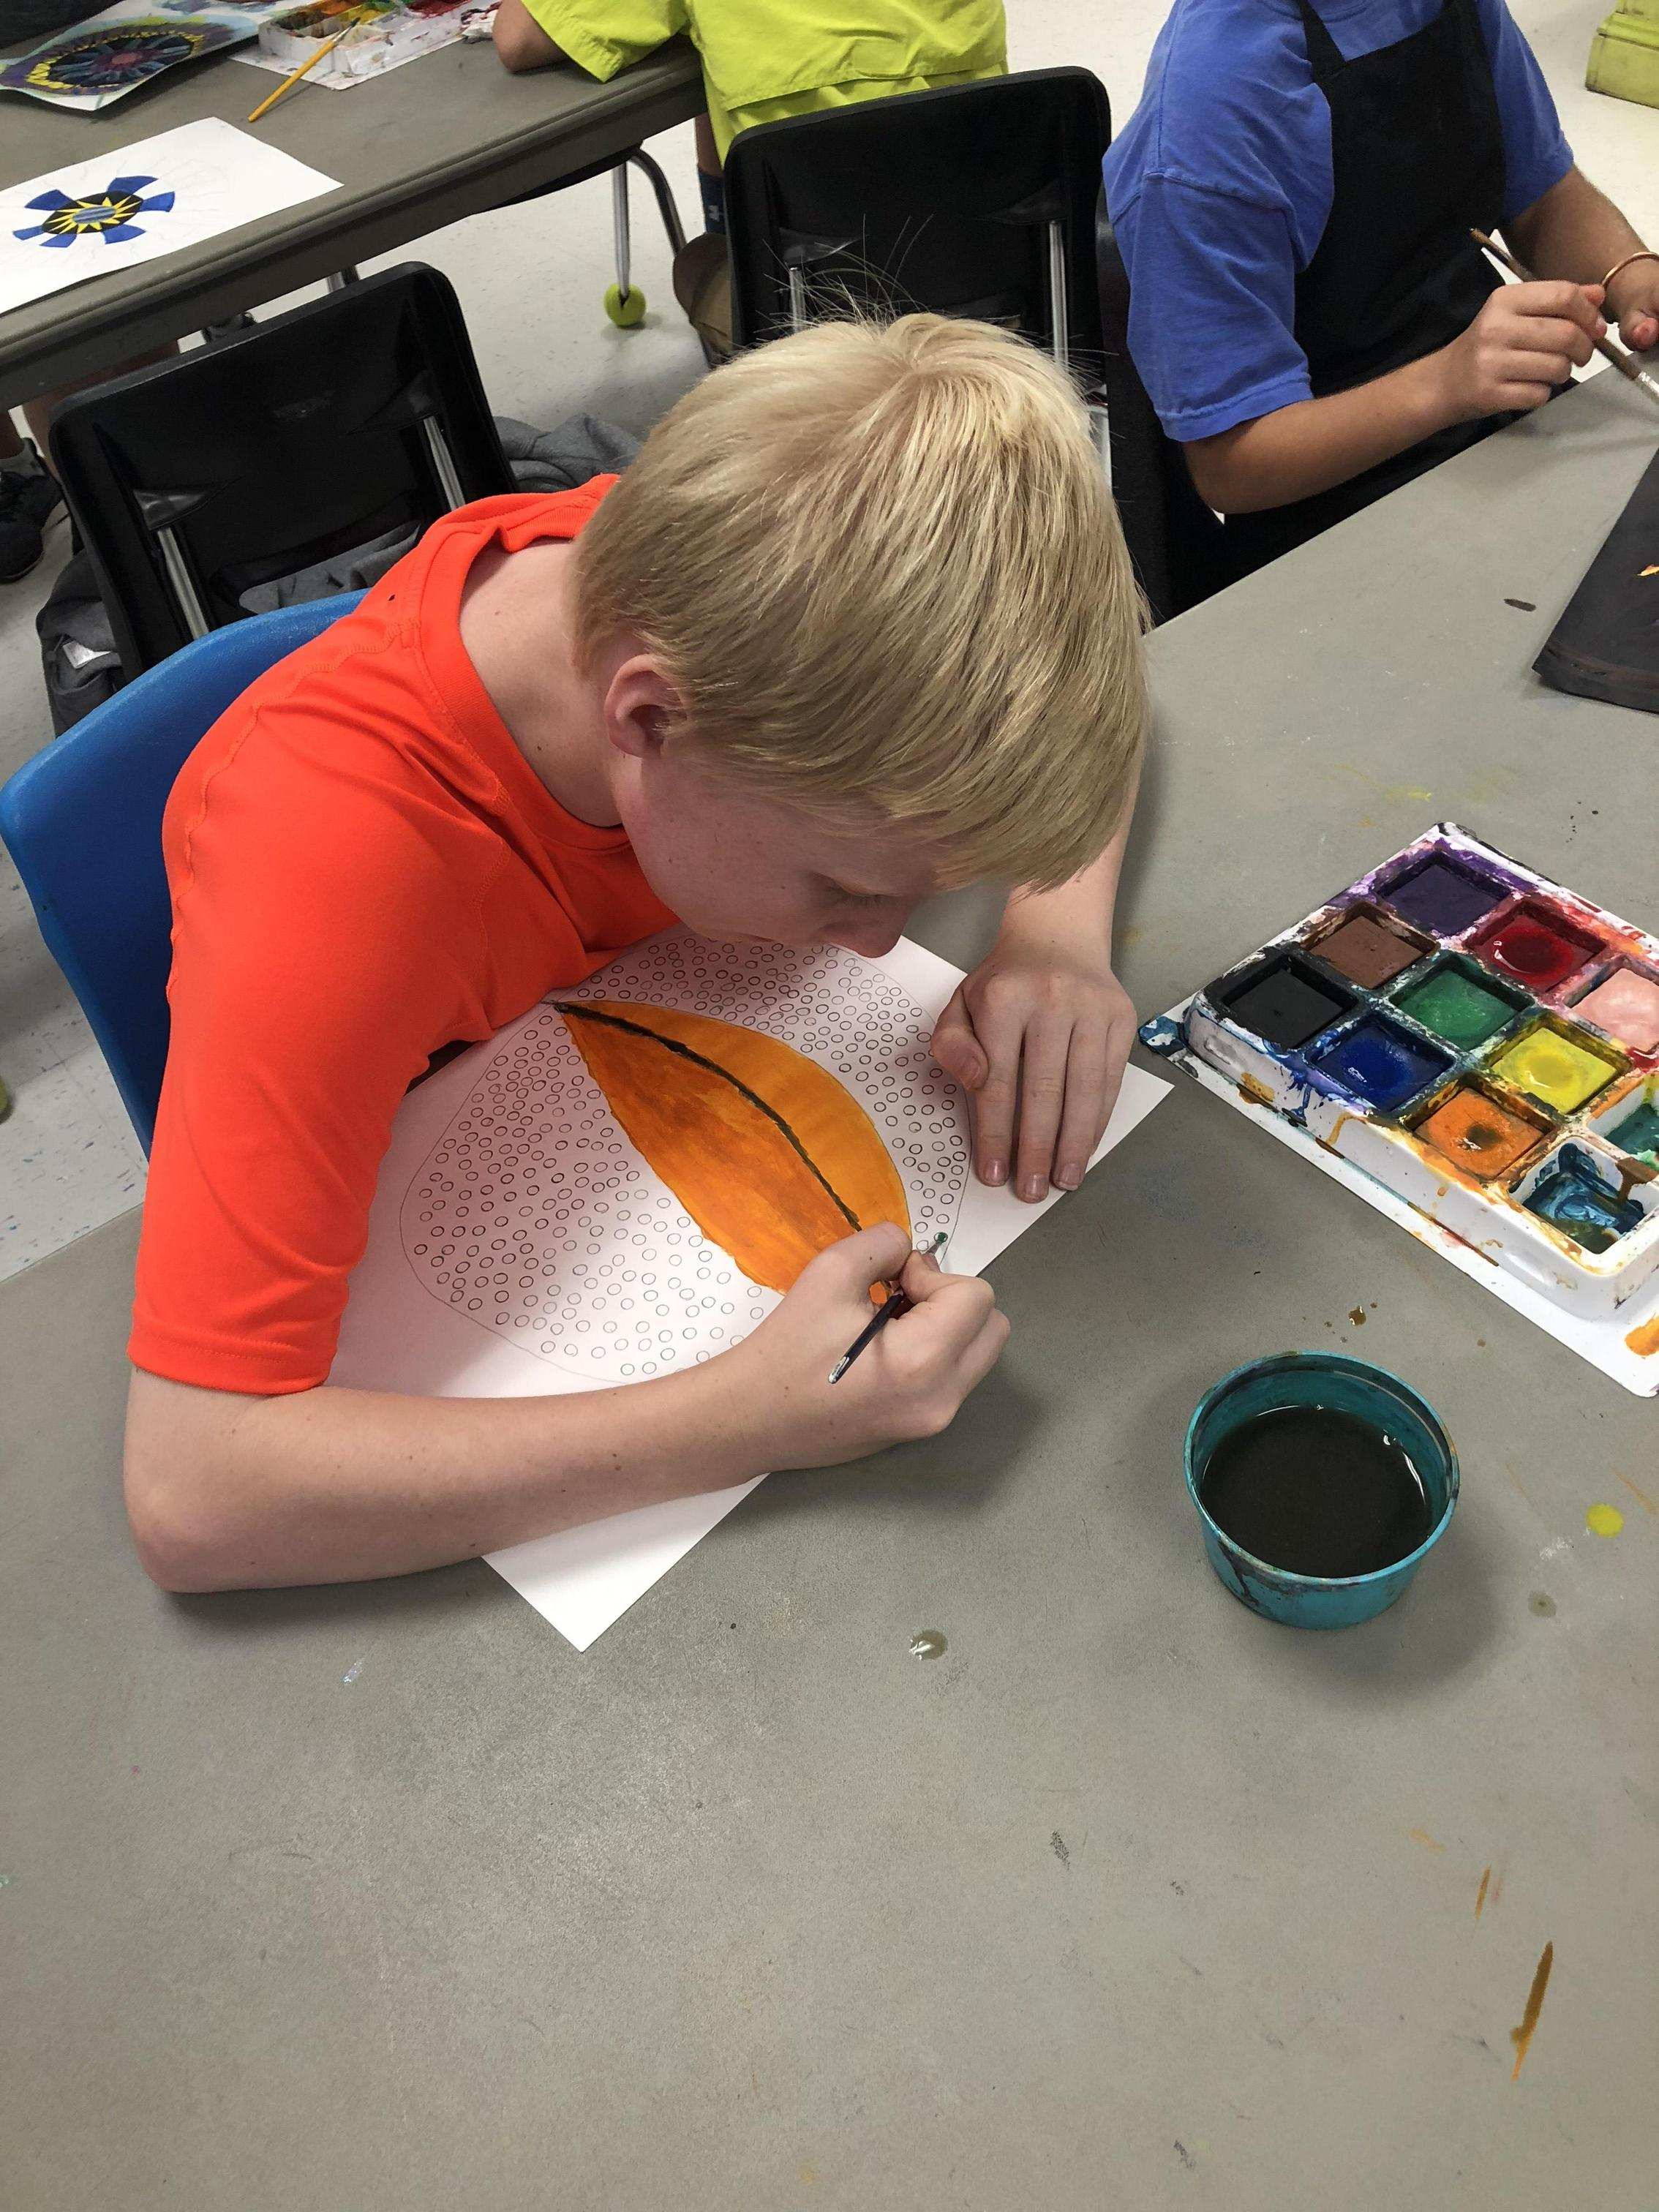 Art projects in elementary